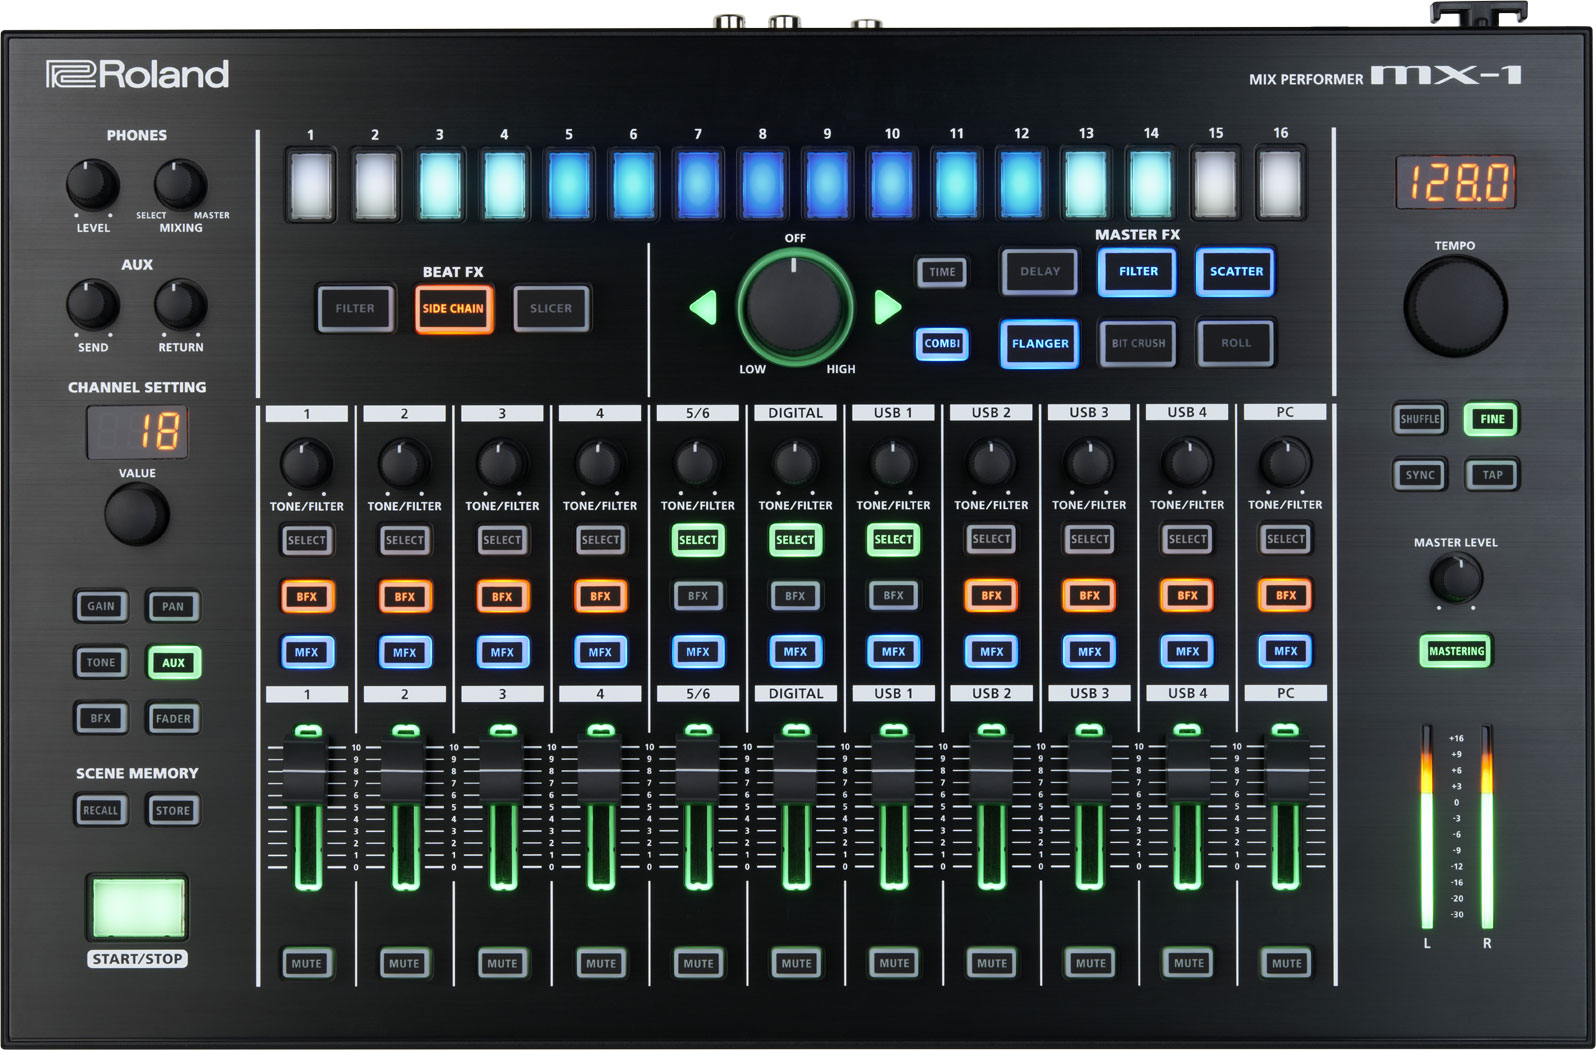 Roland Mx 1 Mix Performer Introduced At Namm 2015